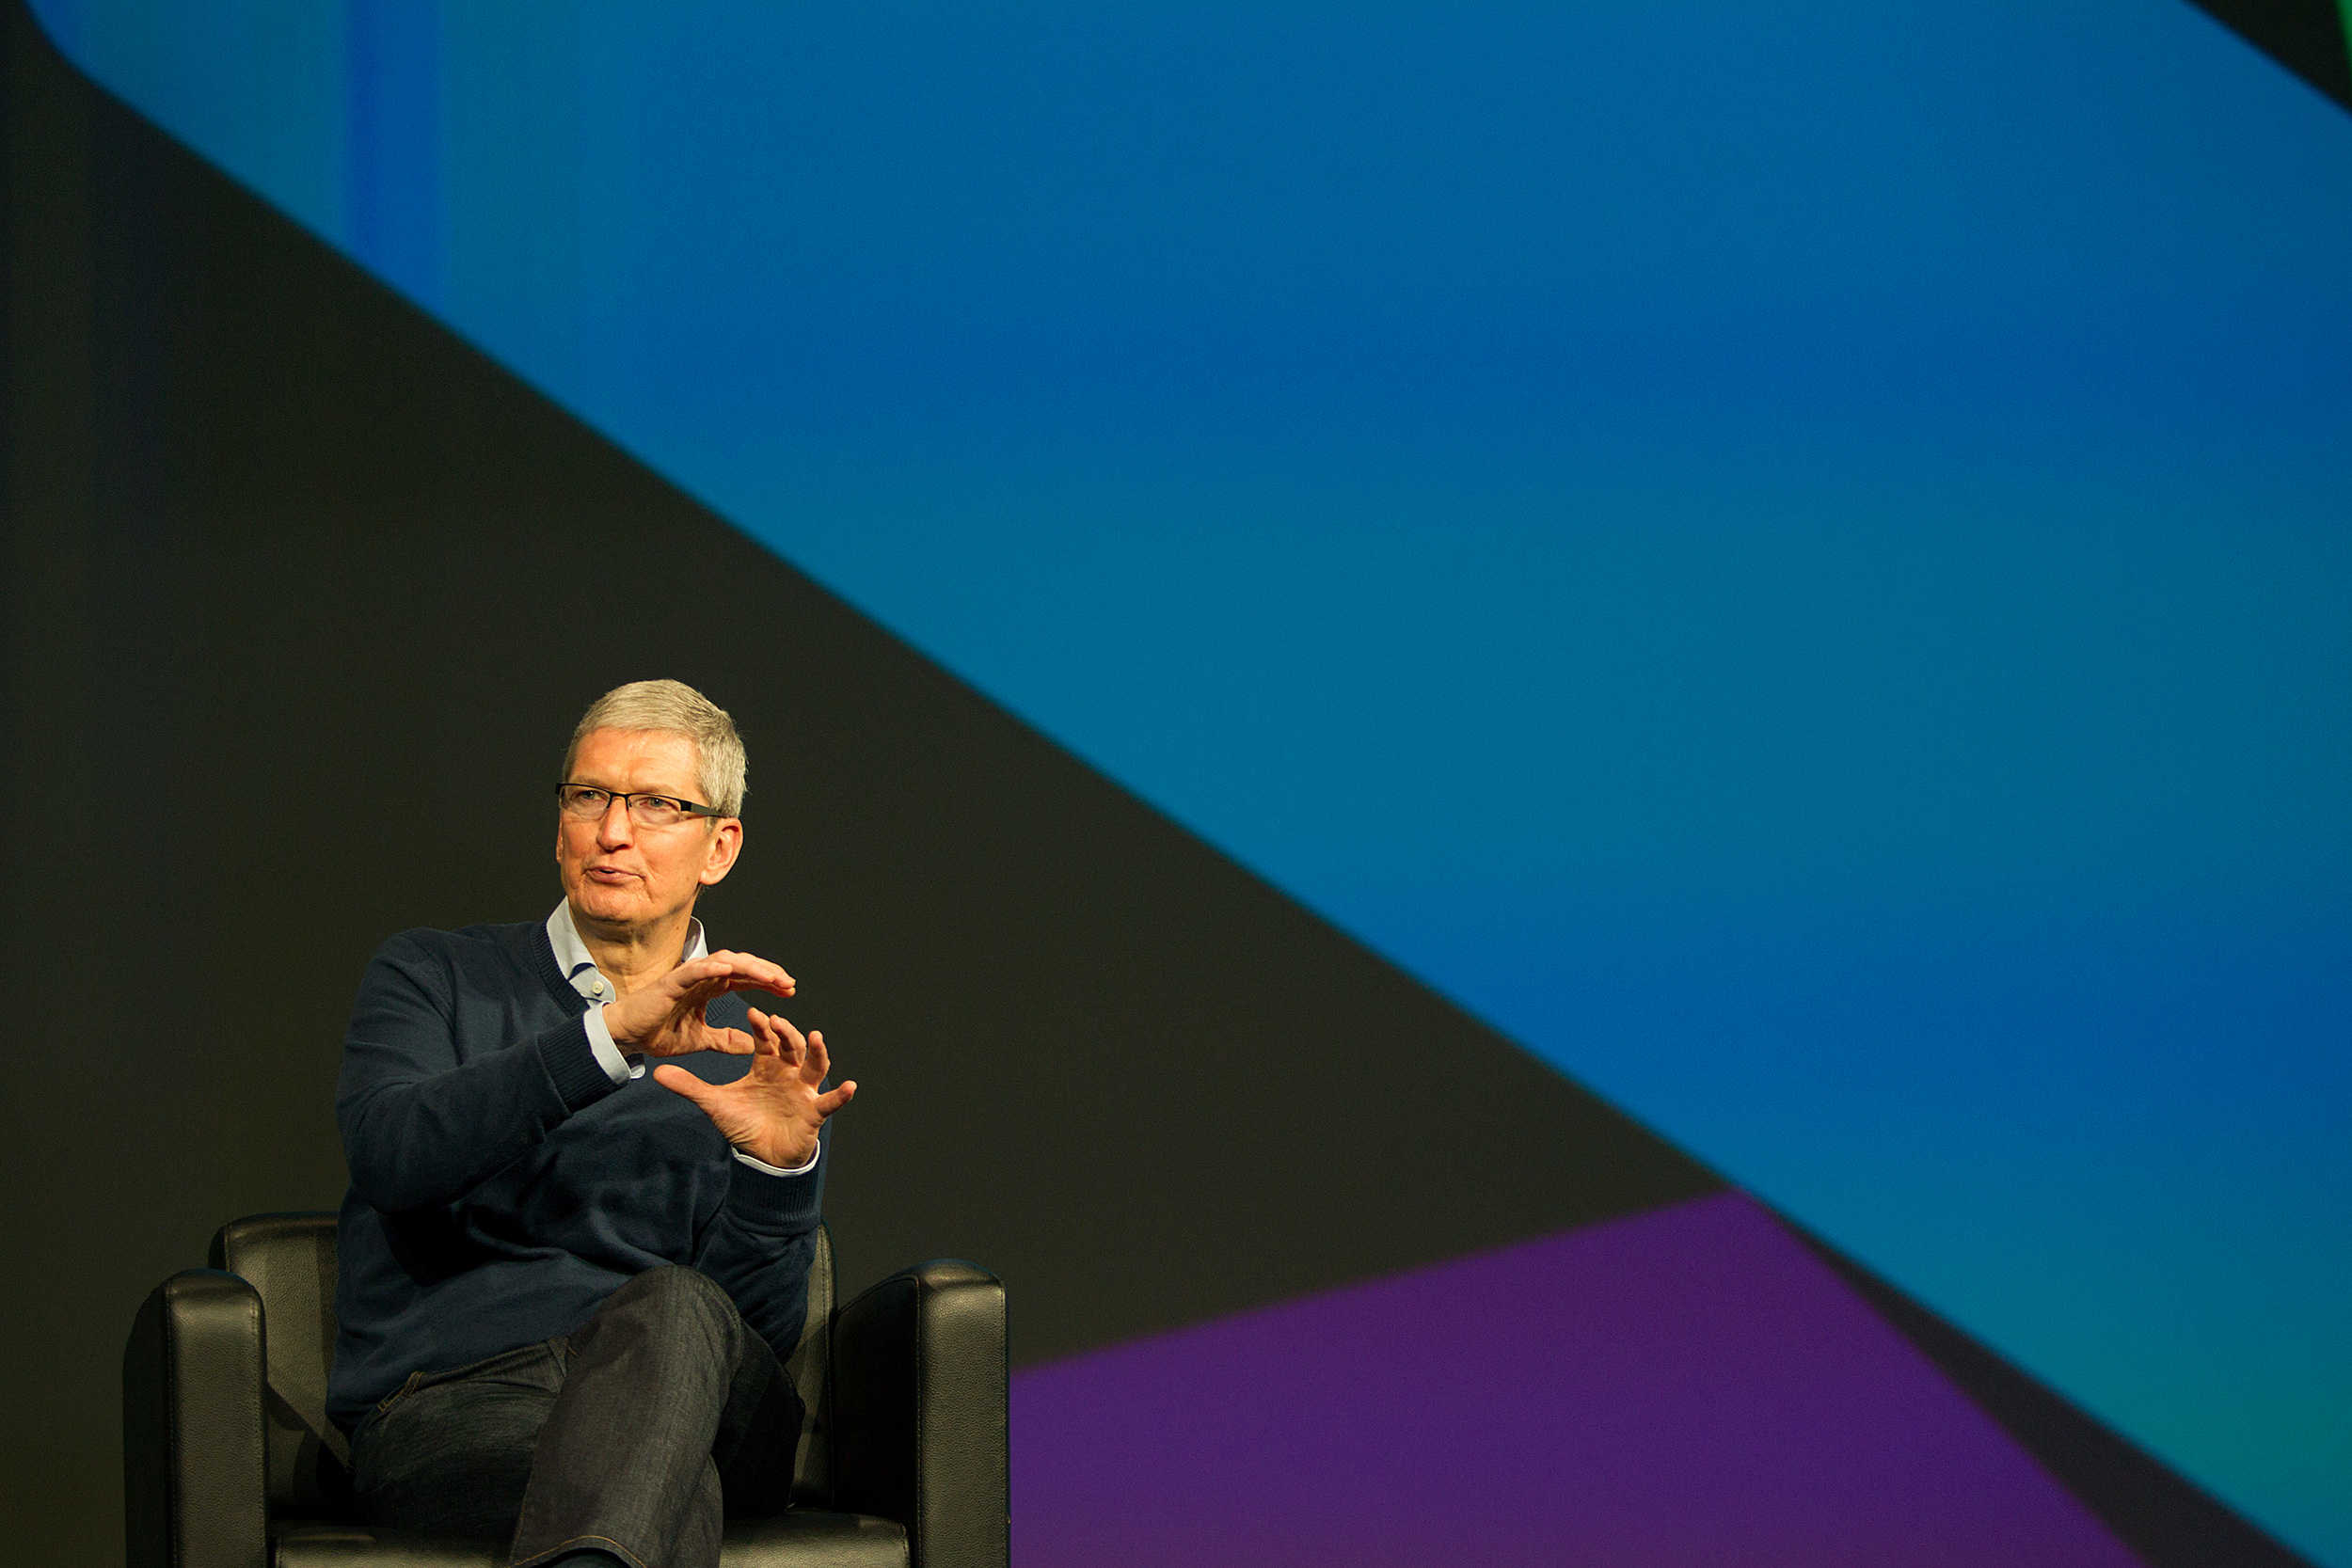 Tim Cook discusses Apple's enterprise ambitions at BoxWorks in San Francisco, September 2015.